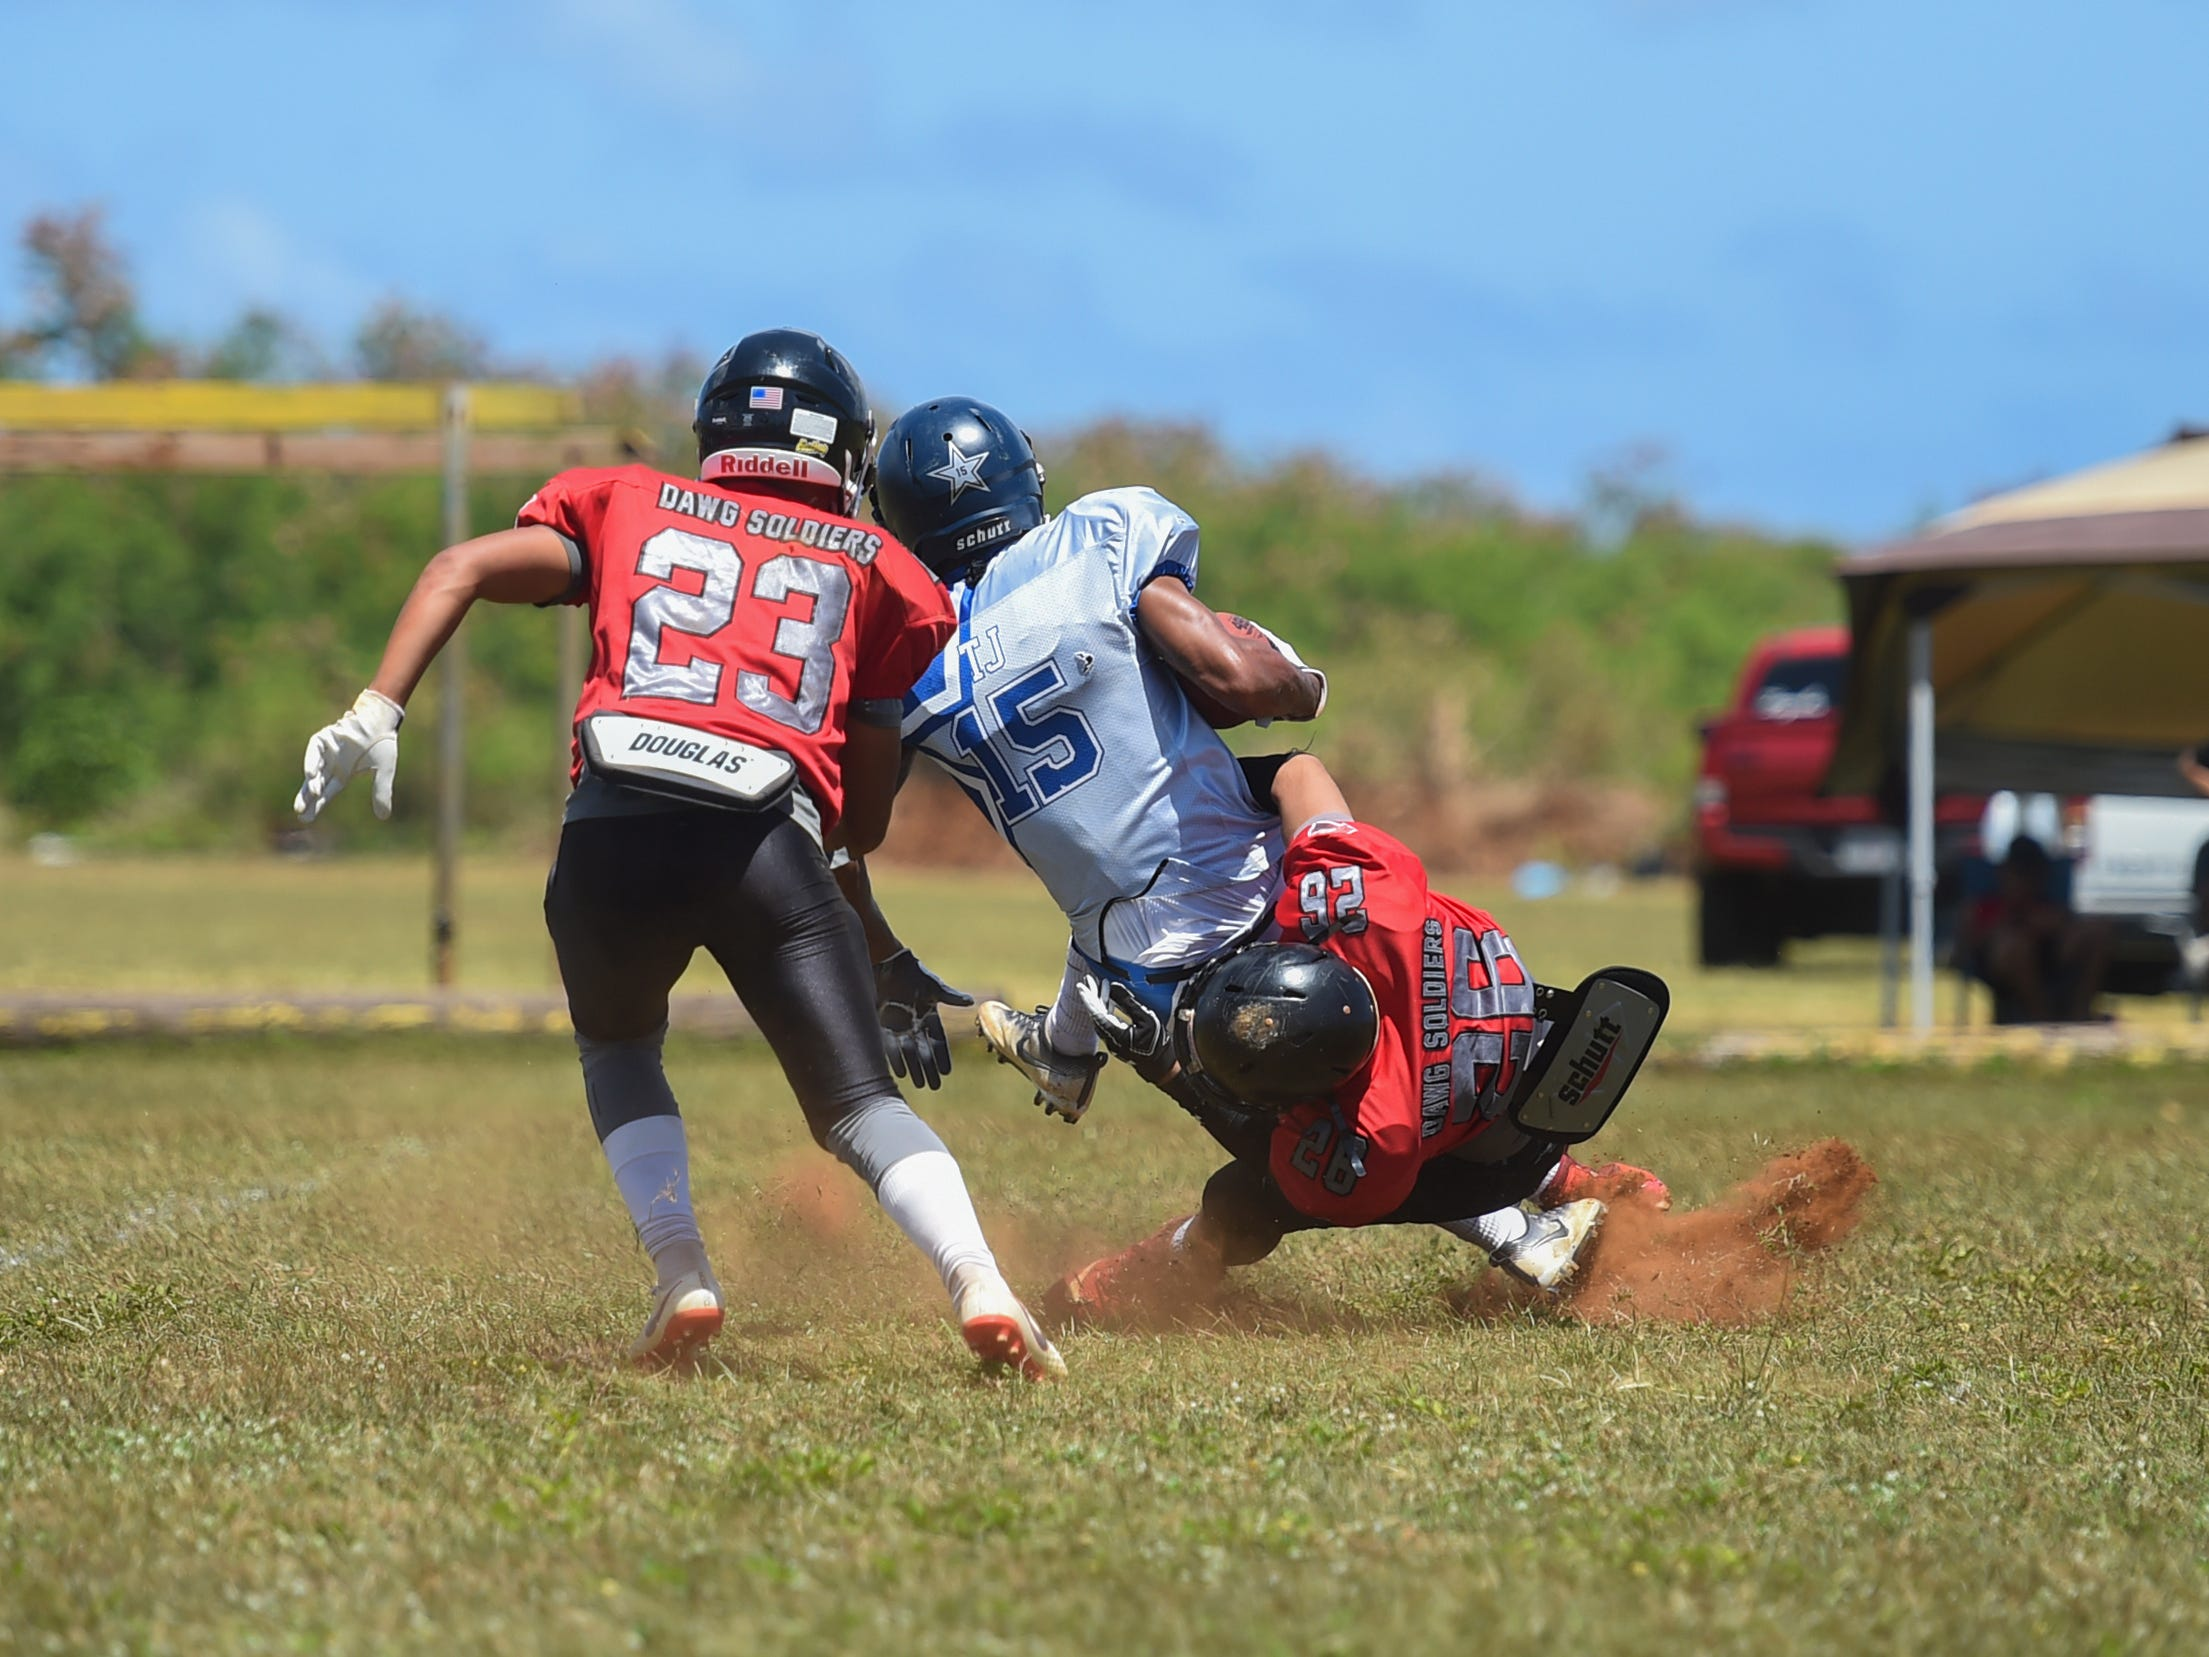 The Outlaws' Lance Borja (26) tackles a Southern Cowboys player during a Budweiser Guahan Varsity Football League game at Eagles Field in Mangilao, March 9, 2019.